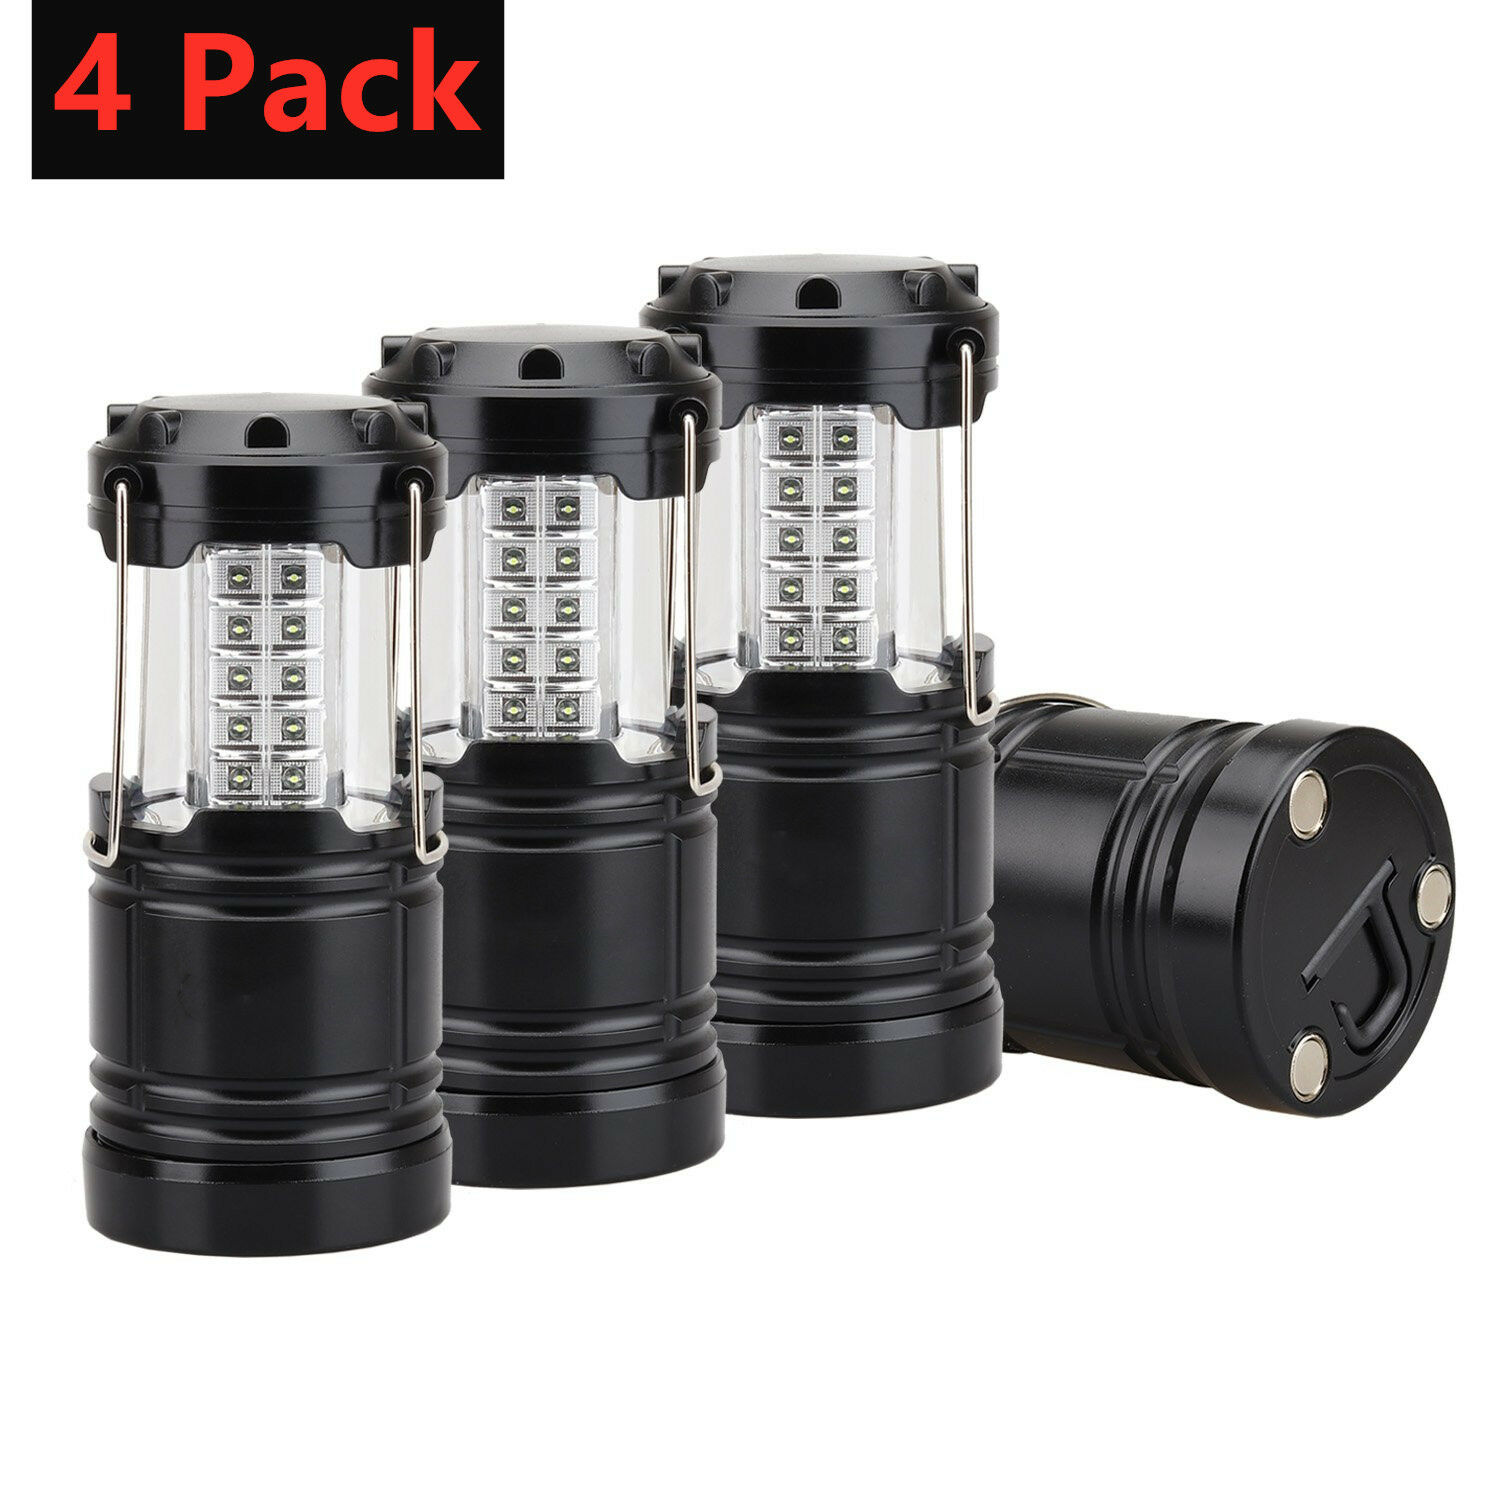 4 Pack Portable Outdoor Collapsible Camping Lantern 30 LED Bright Tent Lamp